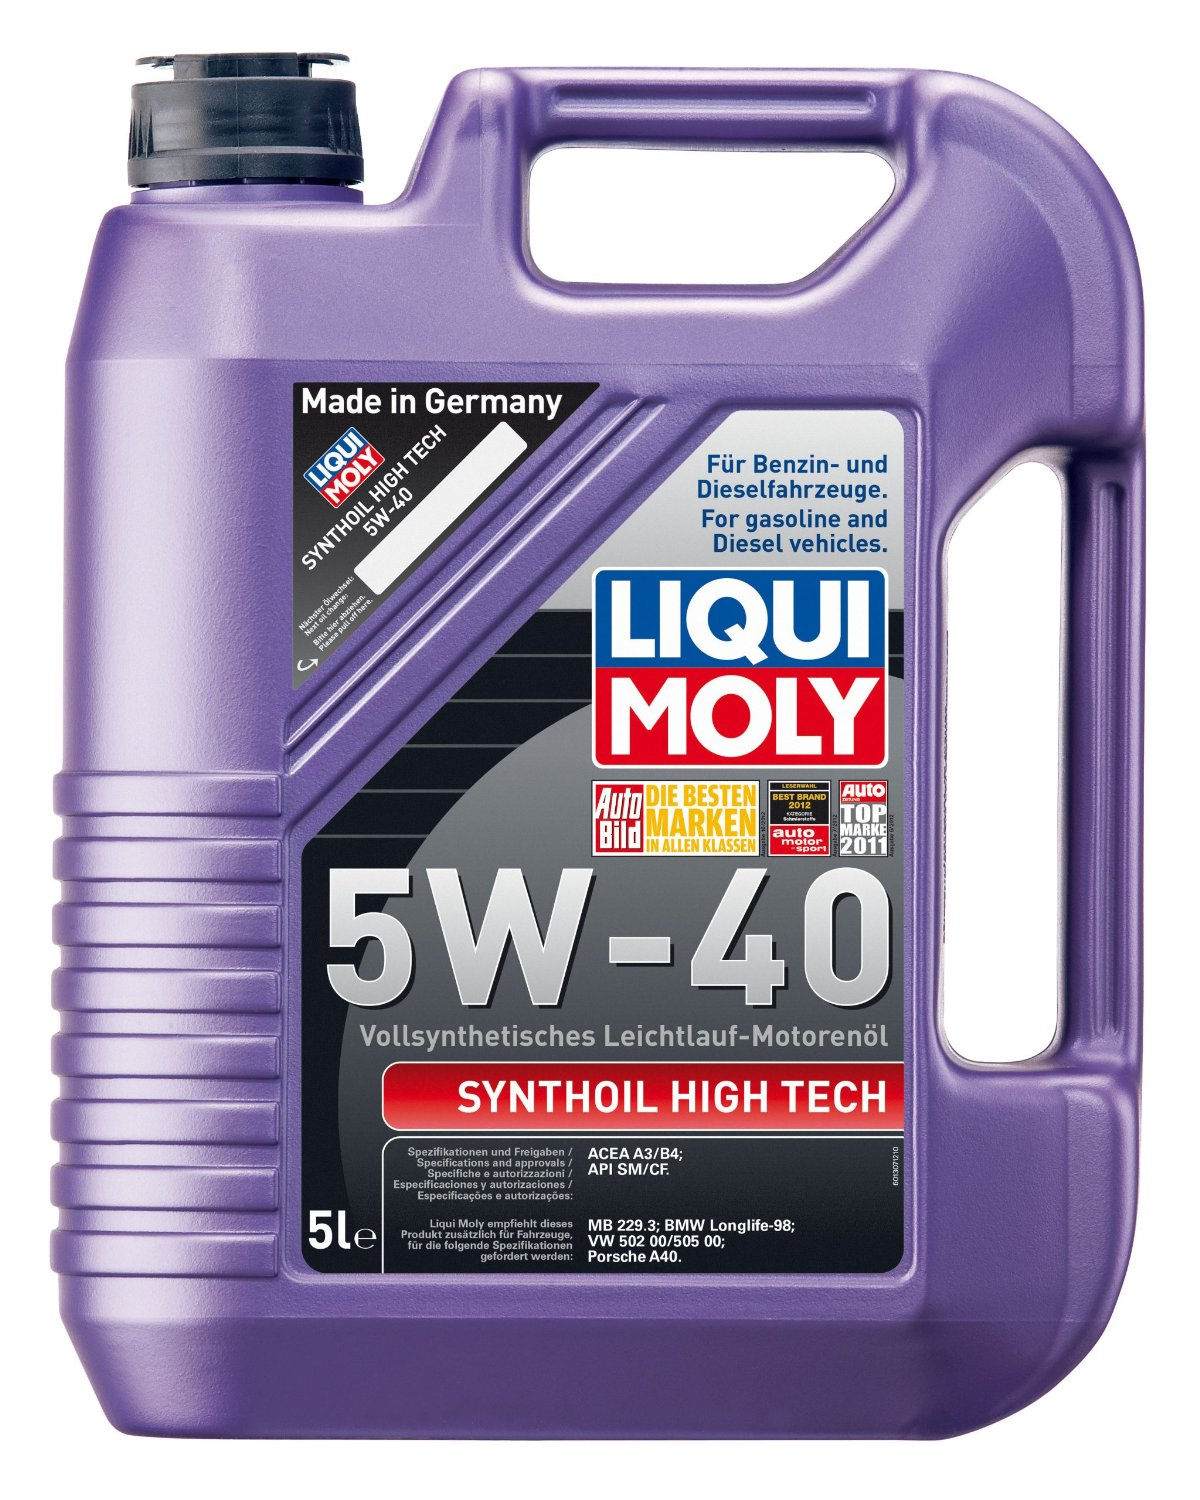 liqui moly synthoil high tech 5w 40 im test liqui moly. Black Bedroom Furniture Sets. Home Design Ideas